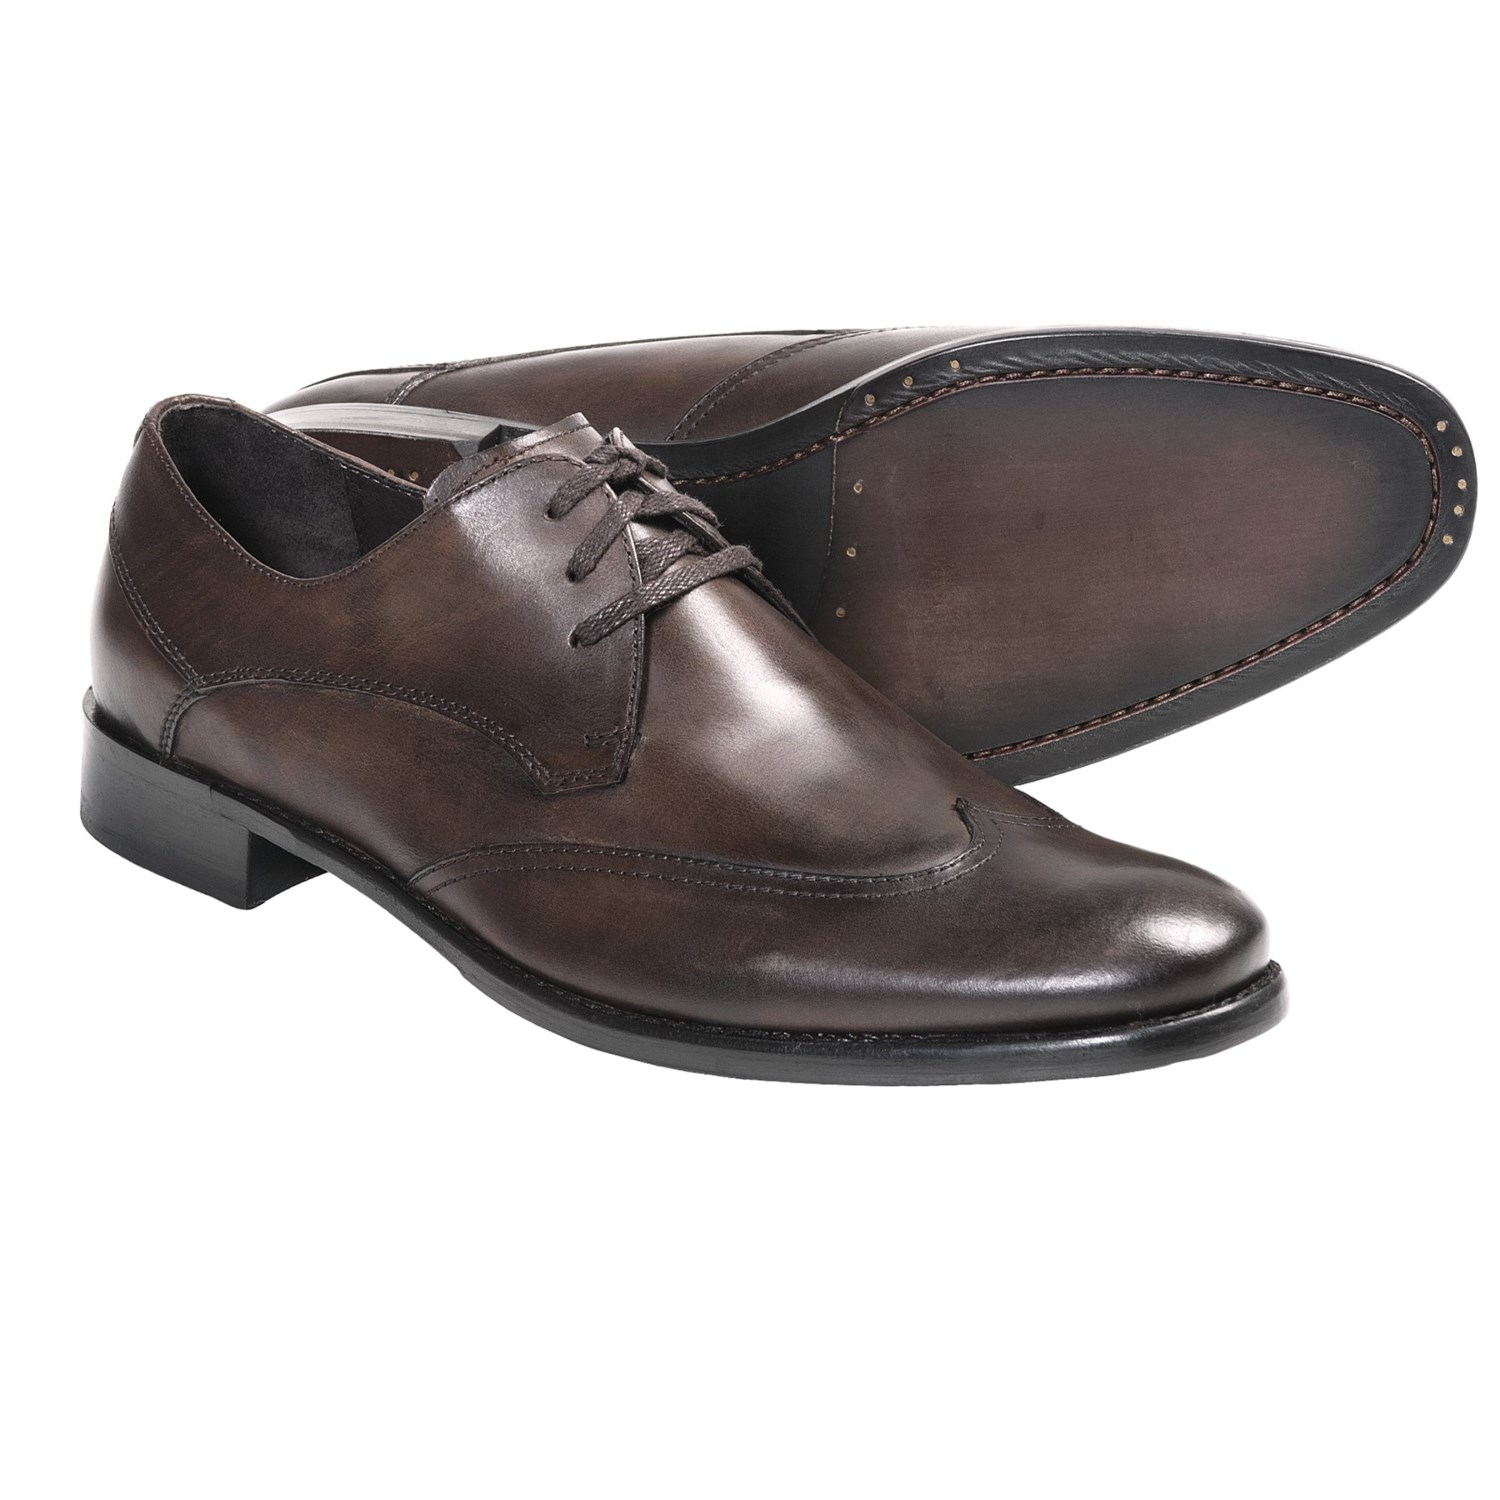 John Varvatos Star Usa Dress Wingtip Shoes